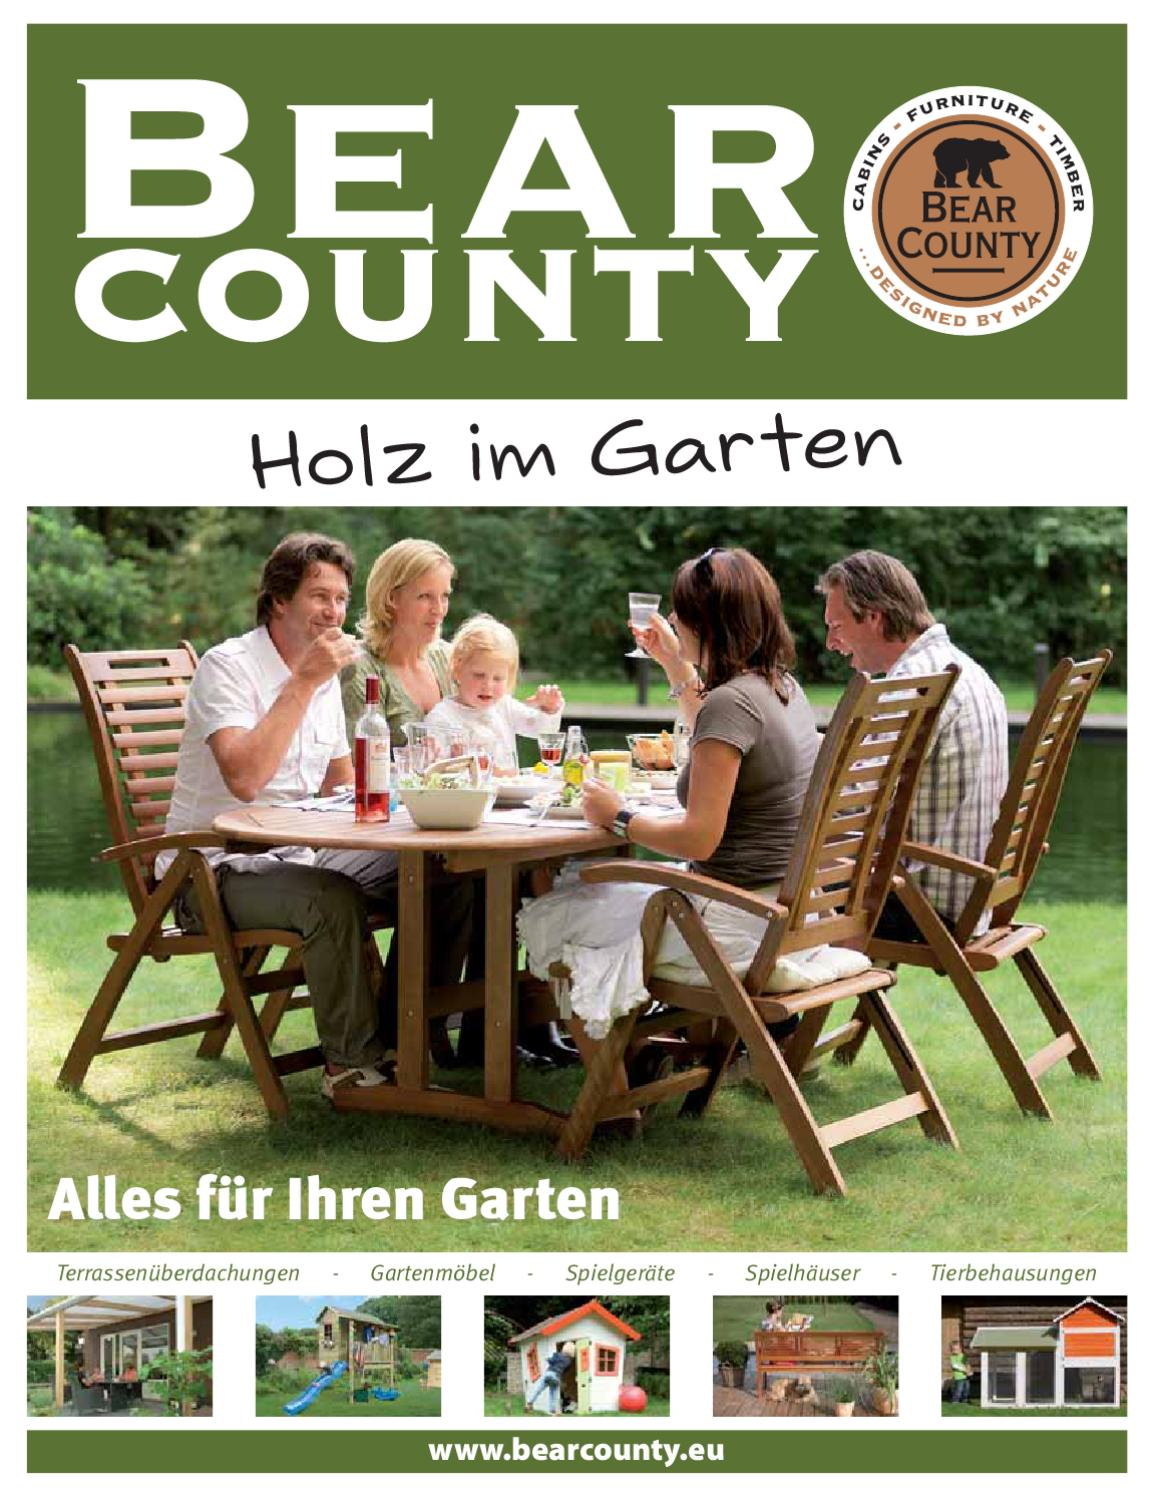 bear county holz im garten 2011 by gk fachmarkt issuu. Black Bedroom Furniture Sets. Home Design Ideas